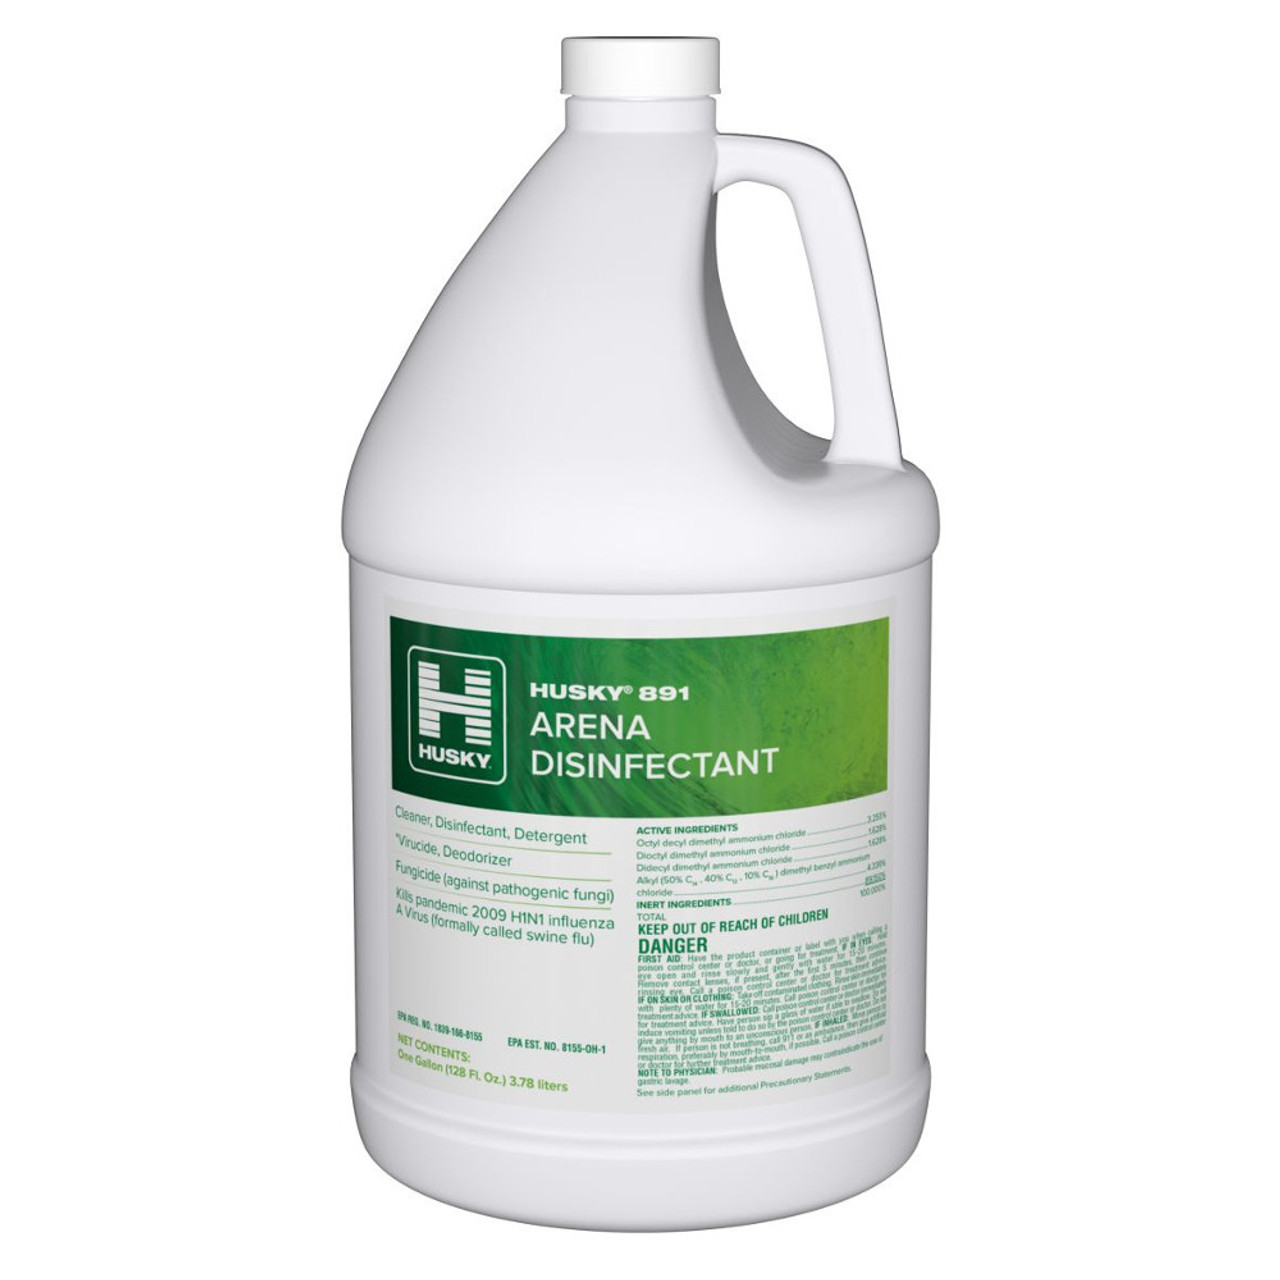 Husky 891 Arena Disinfectant Cleaner